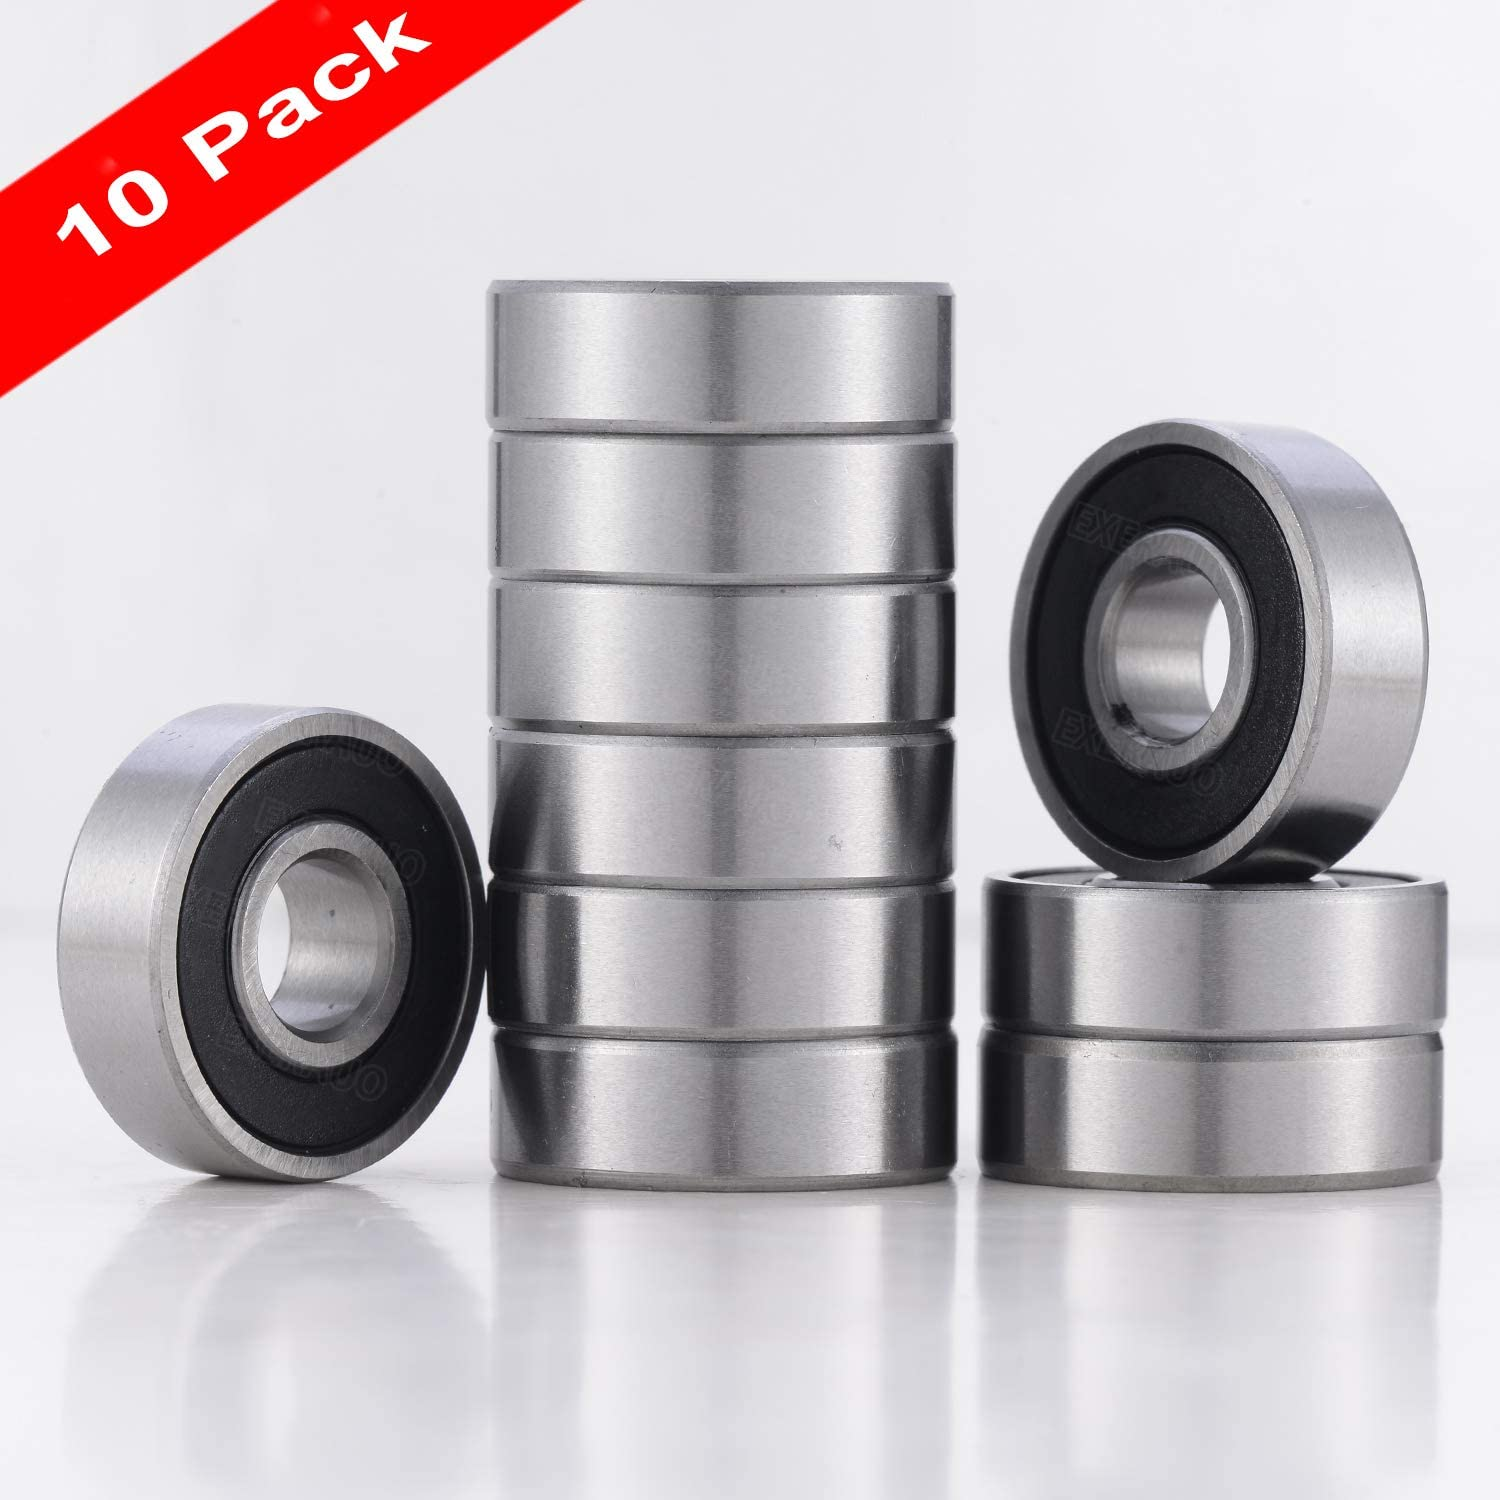 10 PACK R8-2RS BEARINGS, R8 Sealed Deep Groove